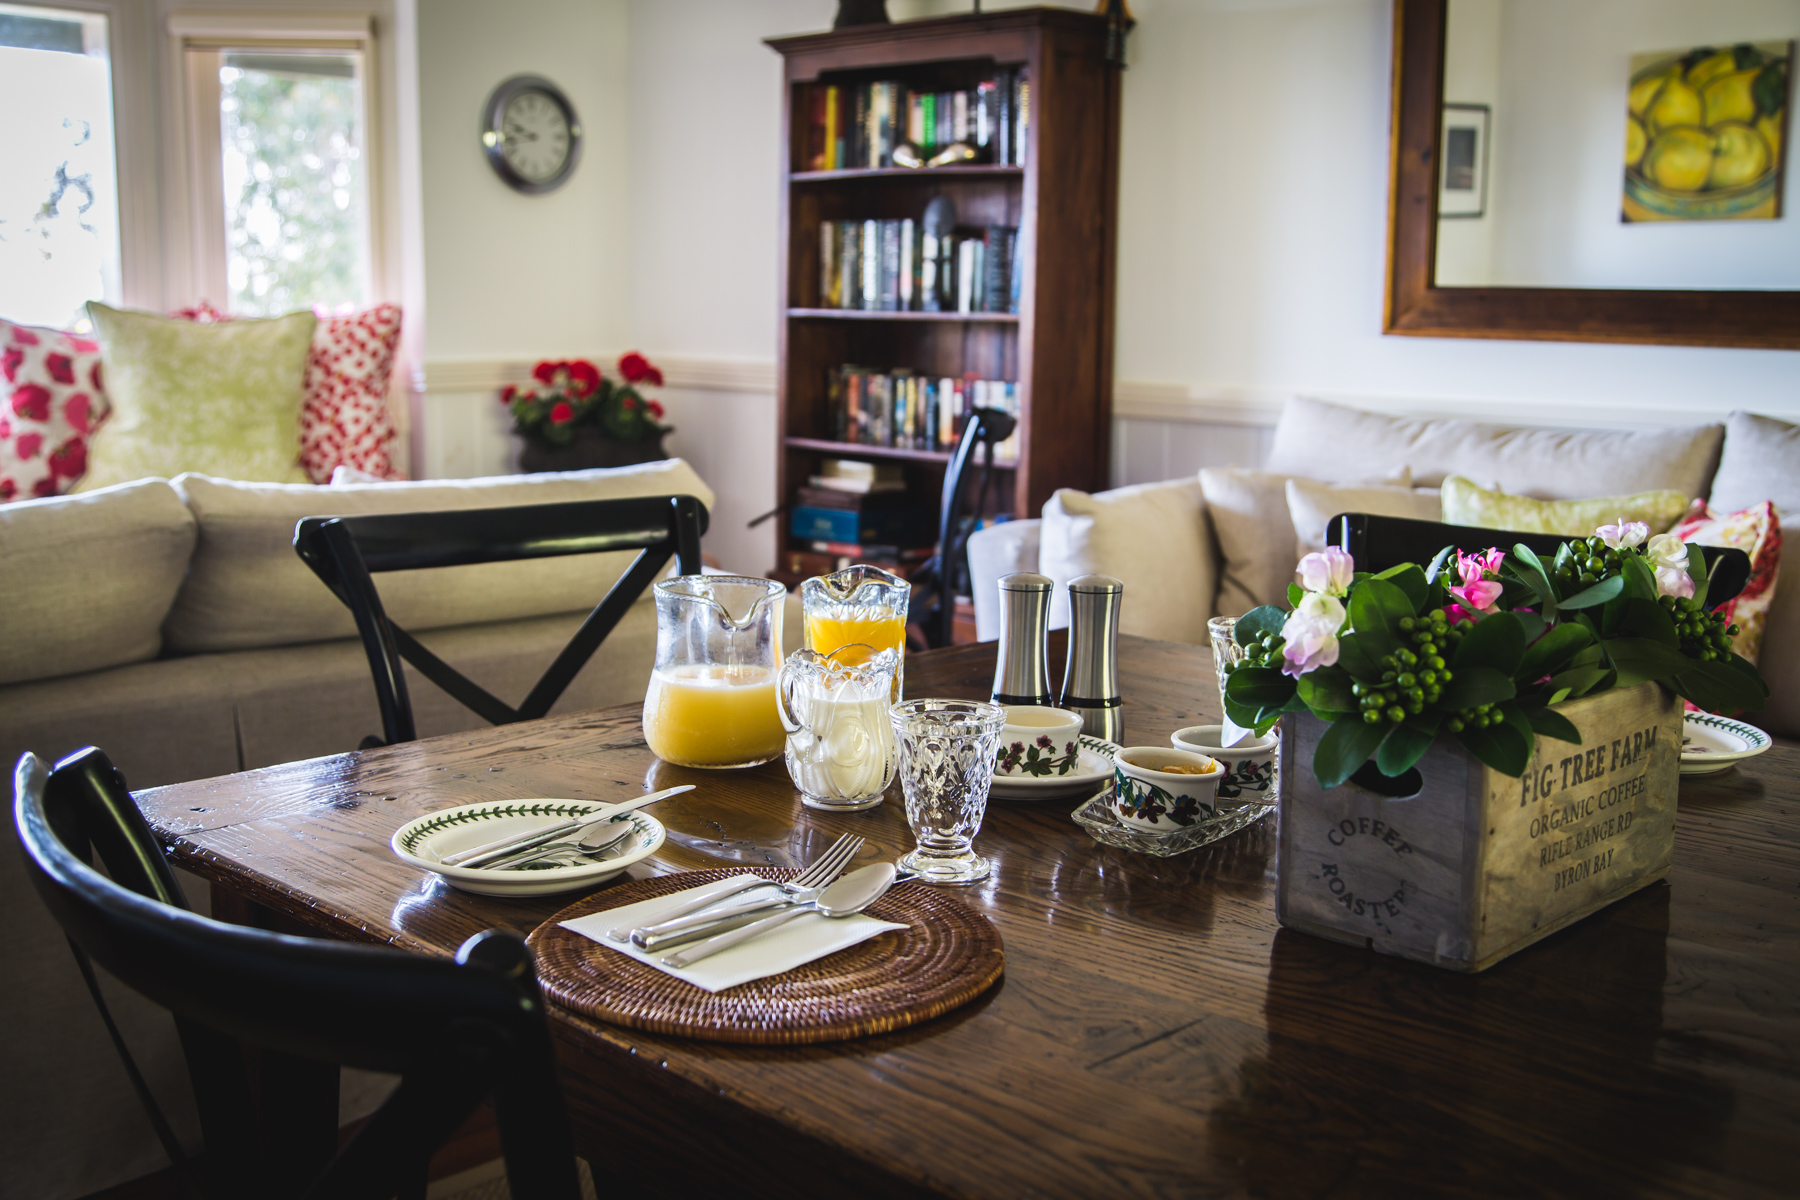 Breakfast in the shared living room